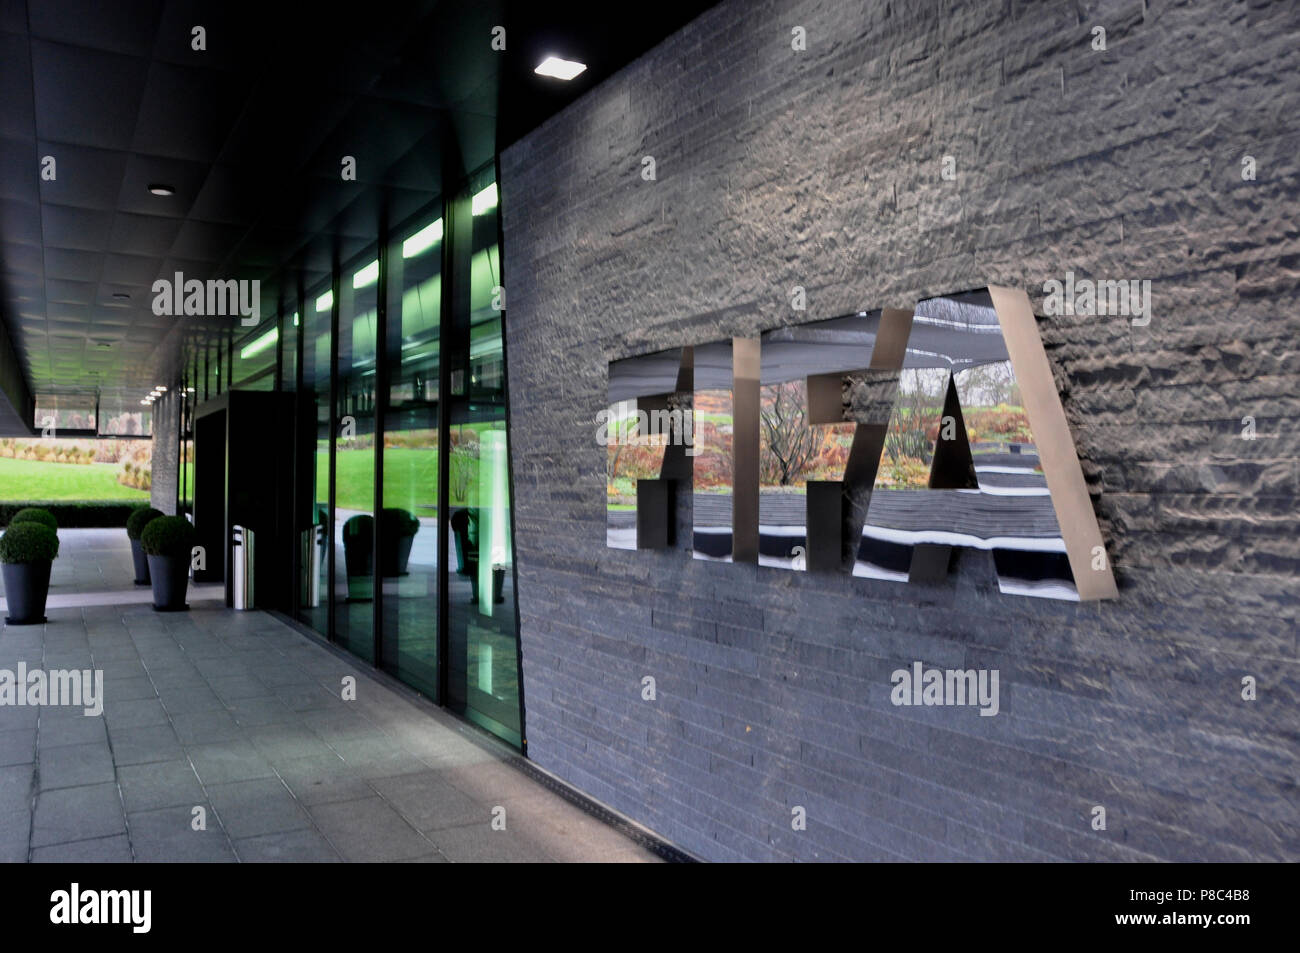 fifa logo stockfotos fifa logo bilder alamy. Black Bedroom Furniture Sets. Home Design Ideas